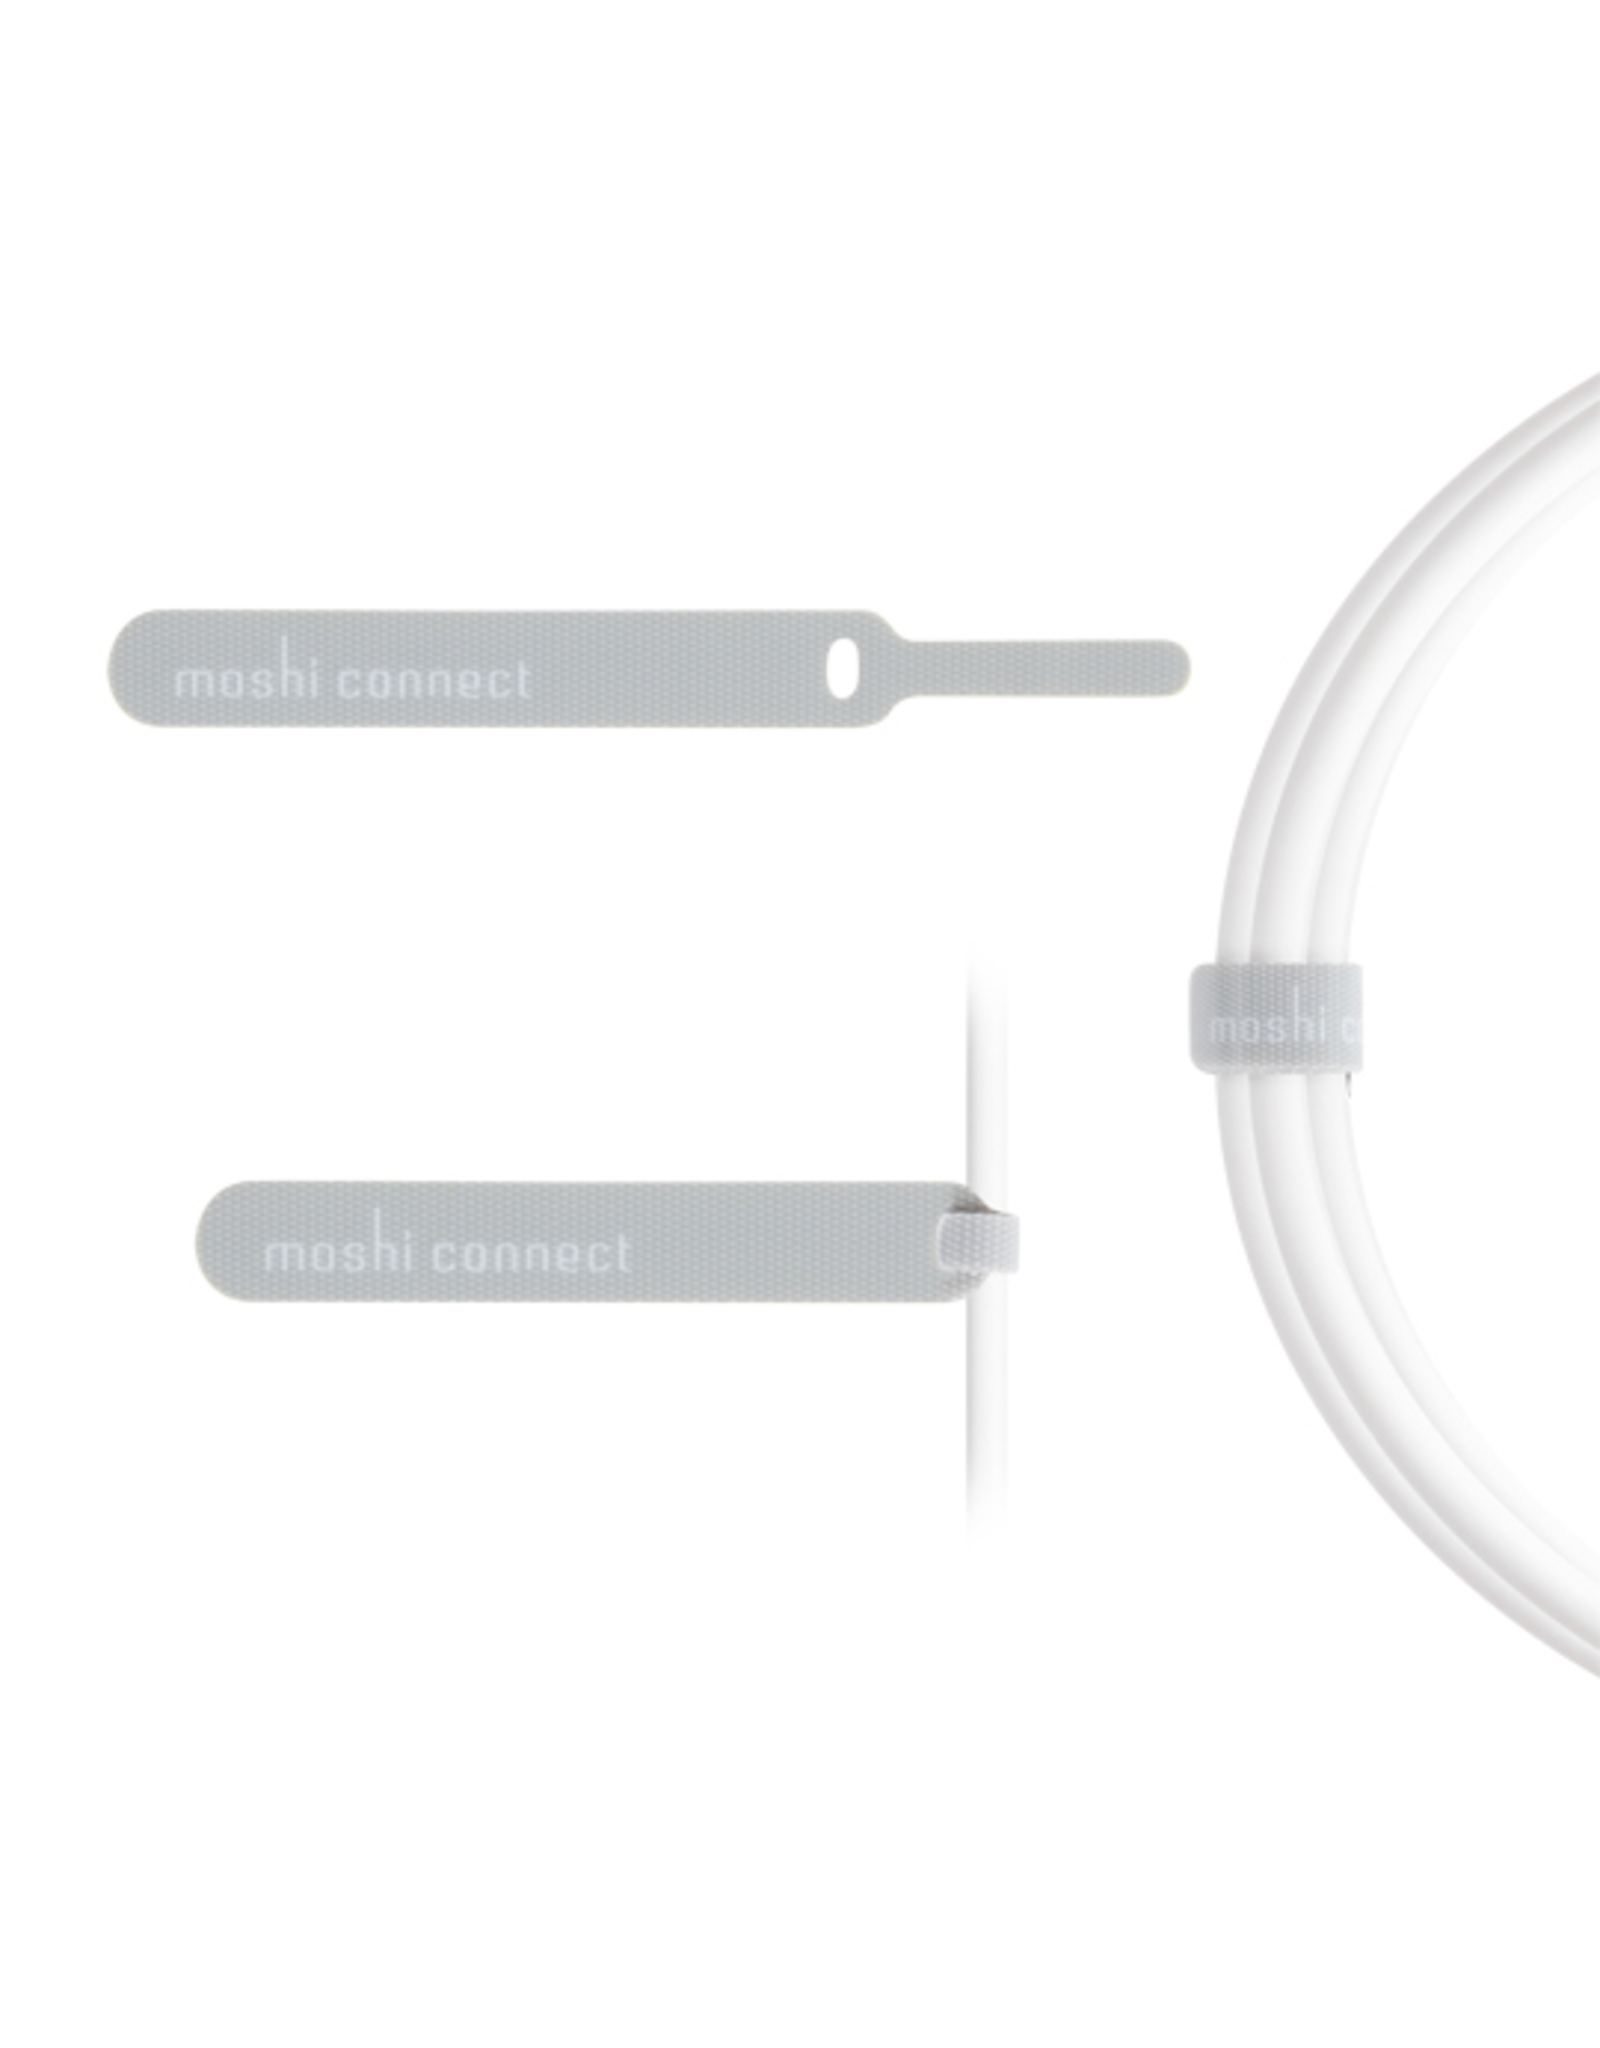 Moshi Moshi Lightning Connector to USB 2.0 Cable - 3 metre White (Apple licensed)